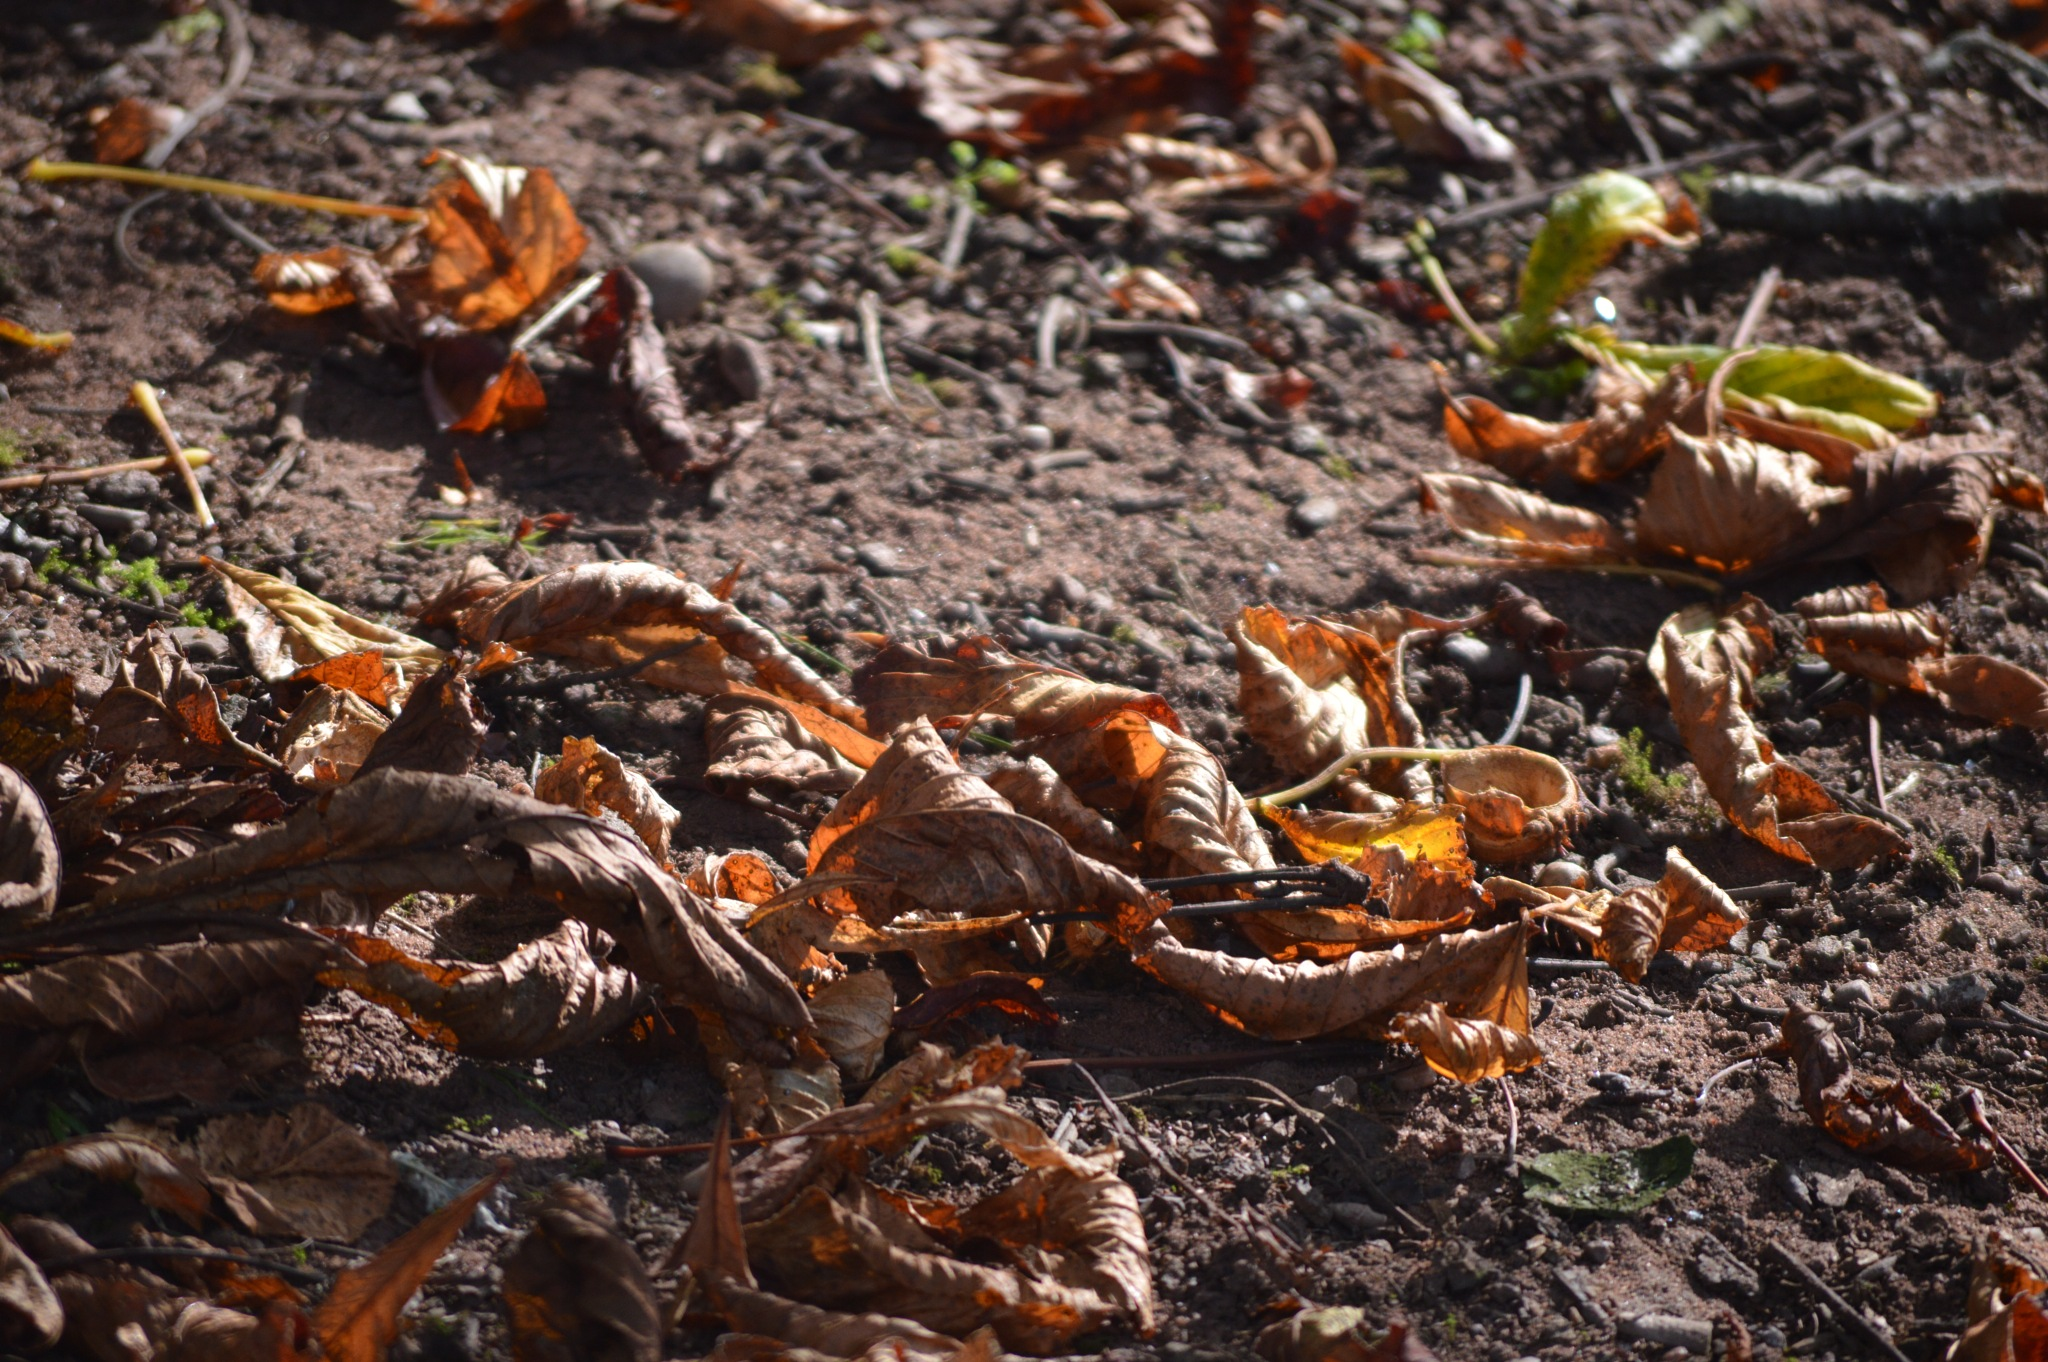 the start of Autumn by adrian.williams.58323